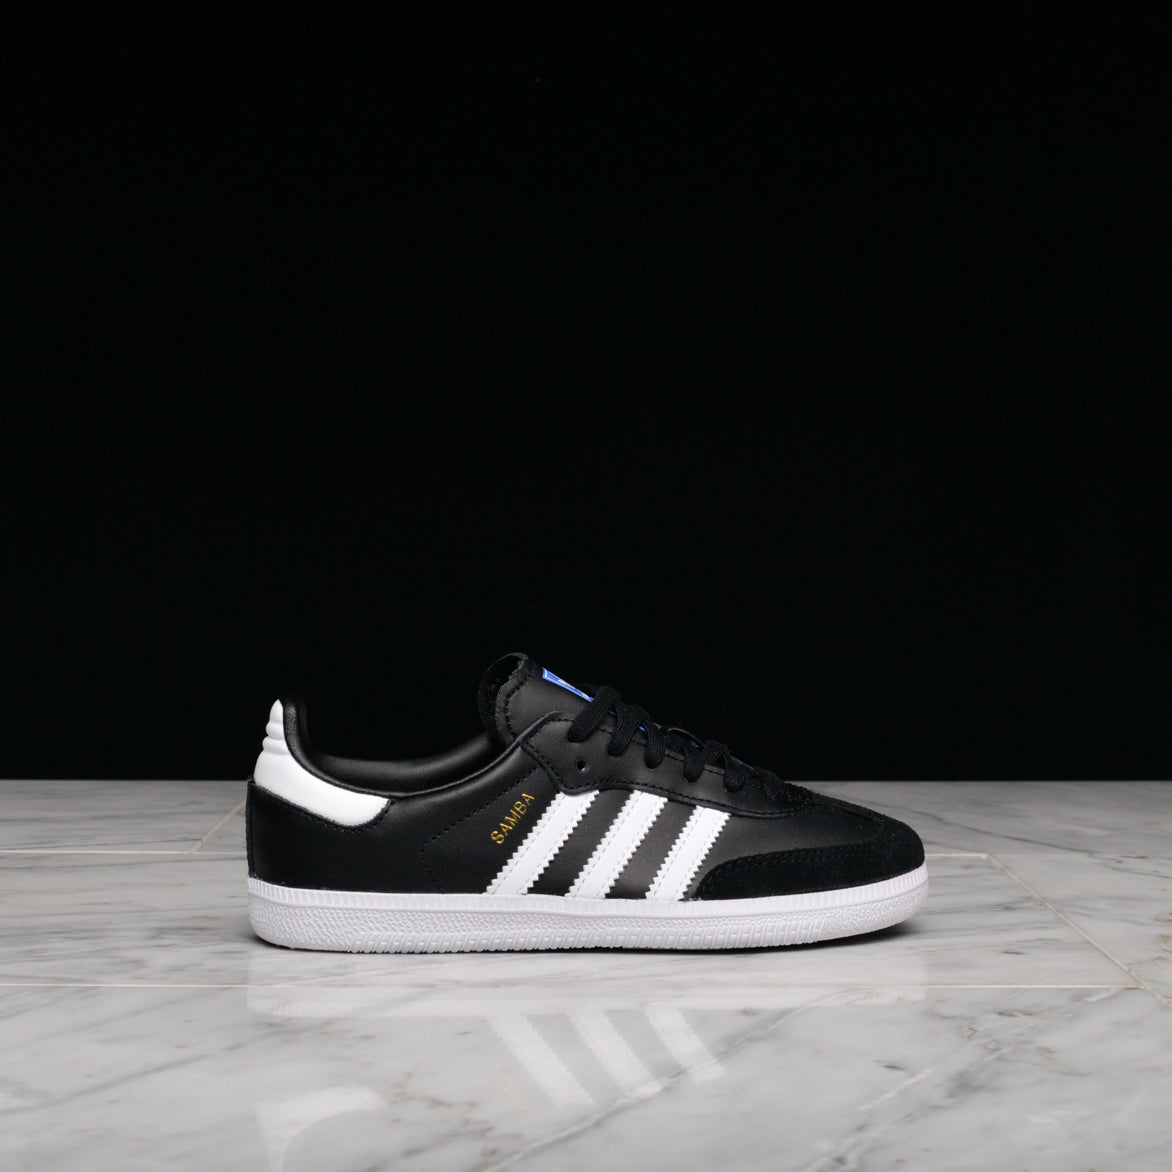 SAMBA OG (CHILD) - BLACK / WHITE